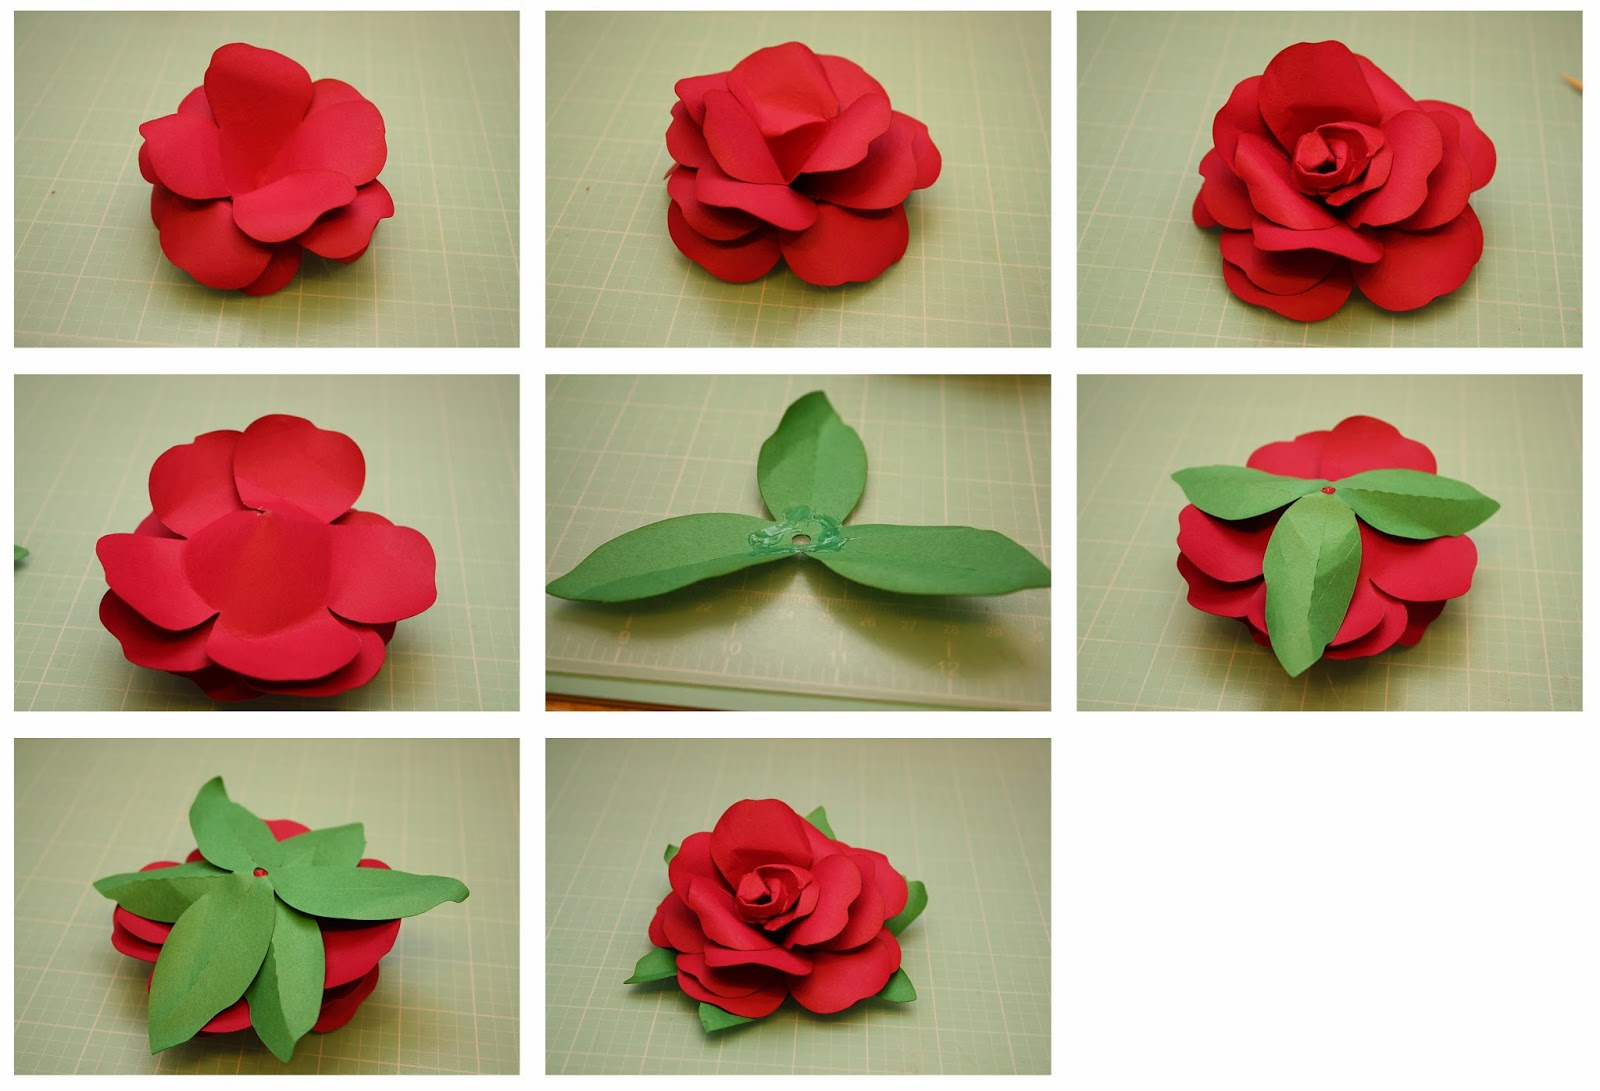 Paper flower 3d yelomdiffusion bits of paper rolled rose and easy to assemble rose 3d paper flowers mightylinksfo